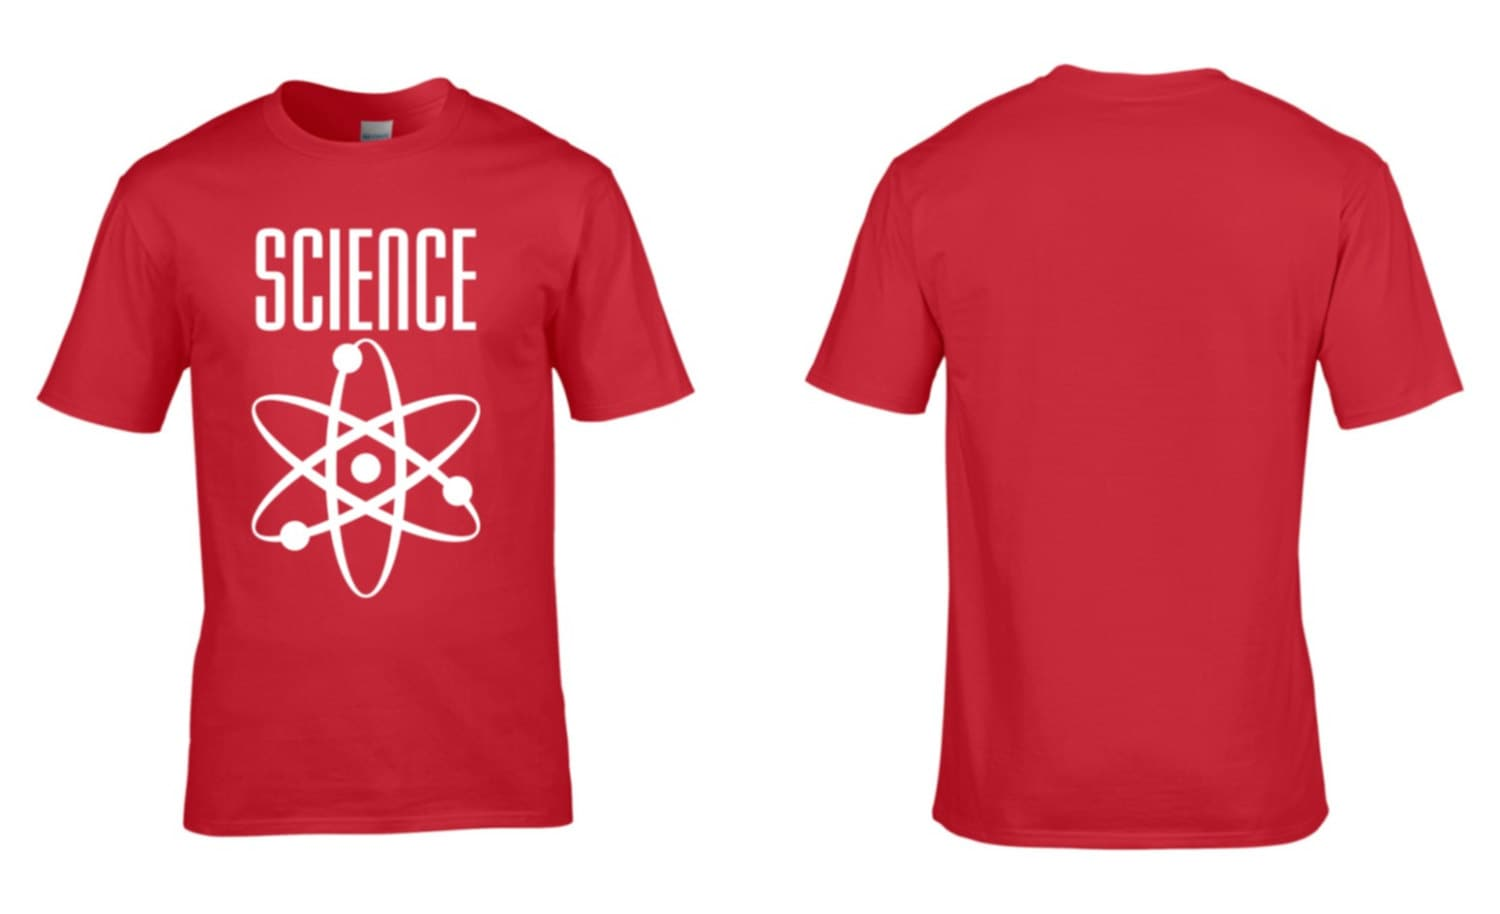 Christmas gifts for guys who like science